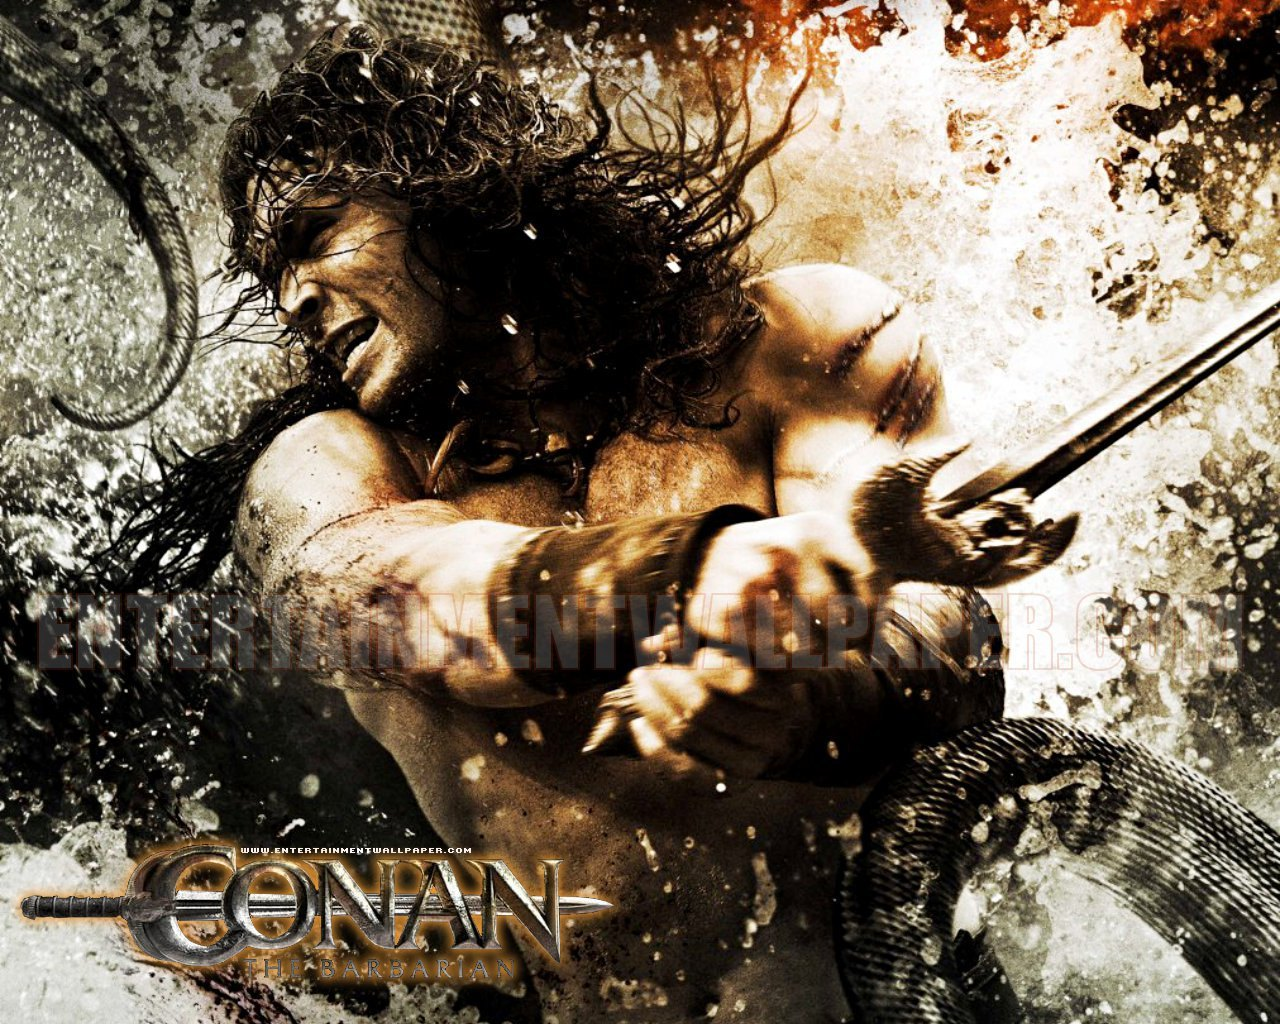 Conan The Barbarian HD Wallpapers  Backgrounds  Wallpaper  1280x1024